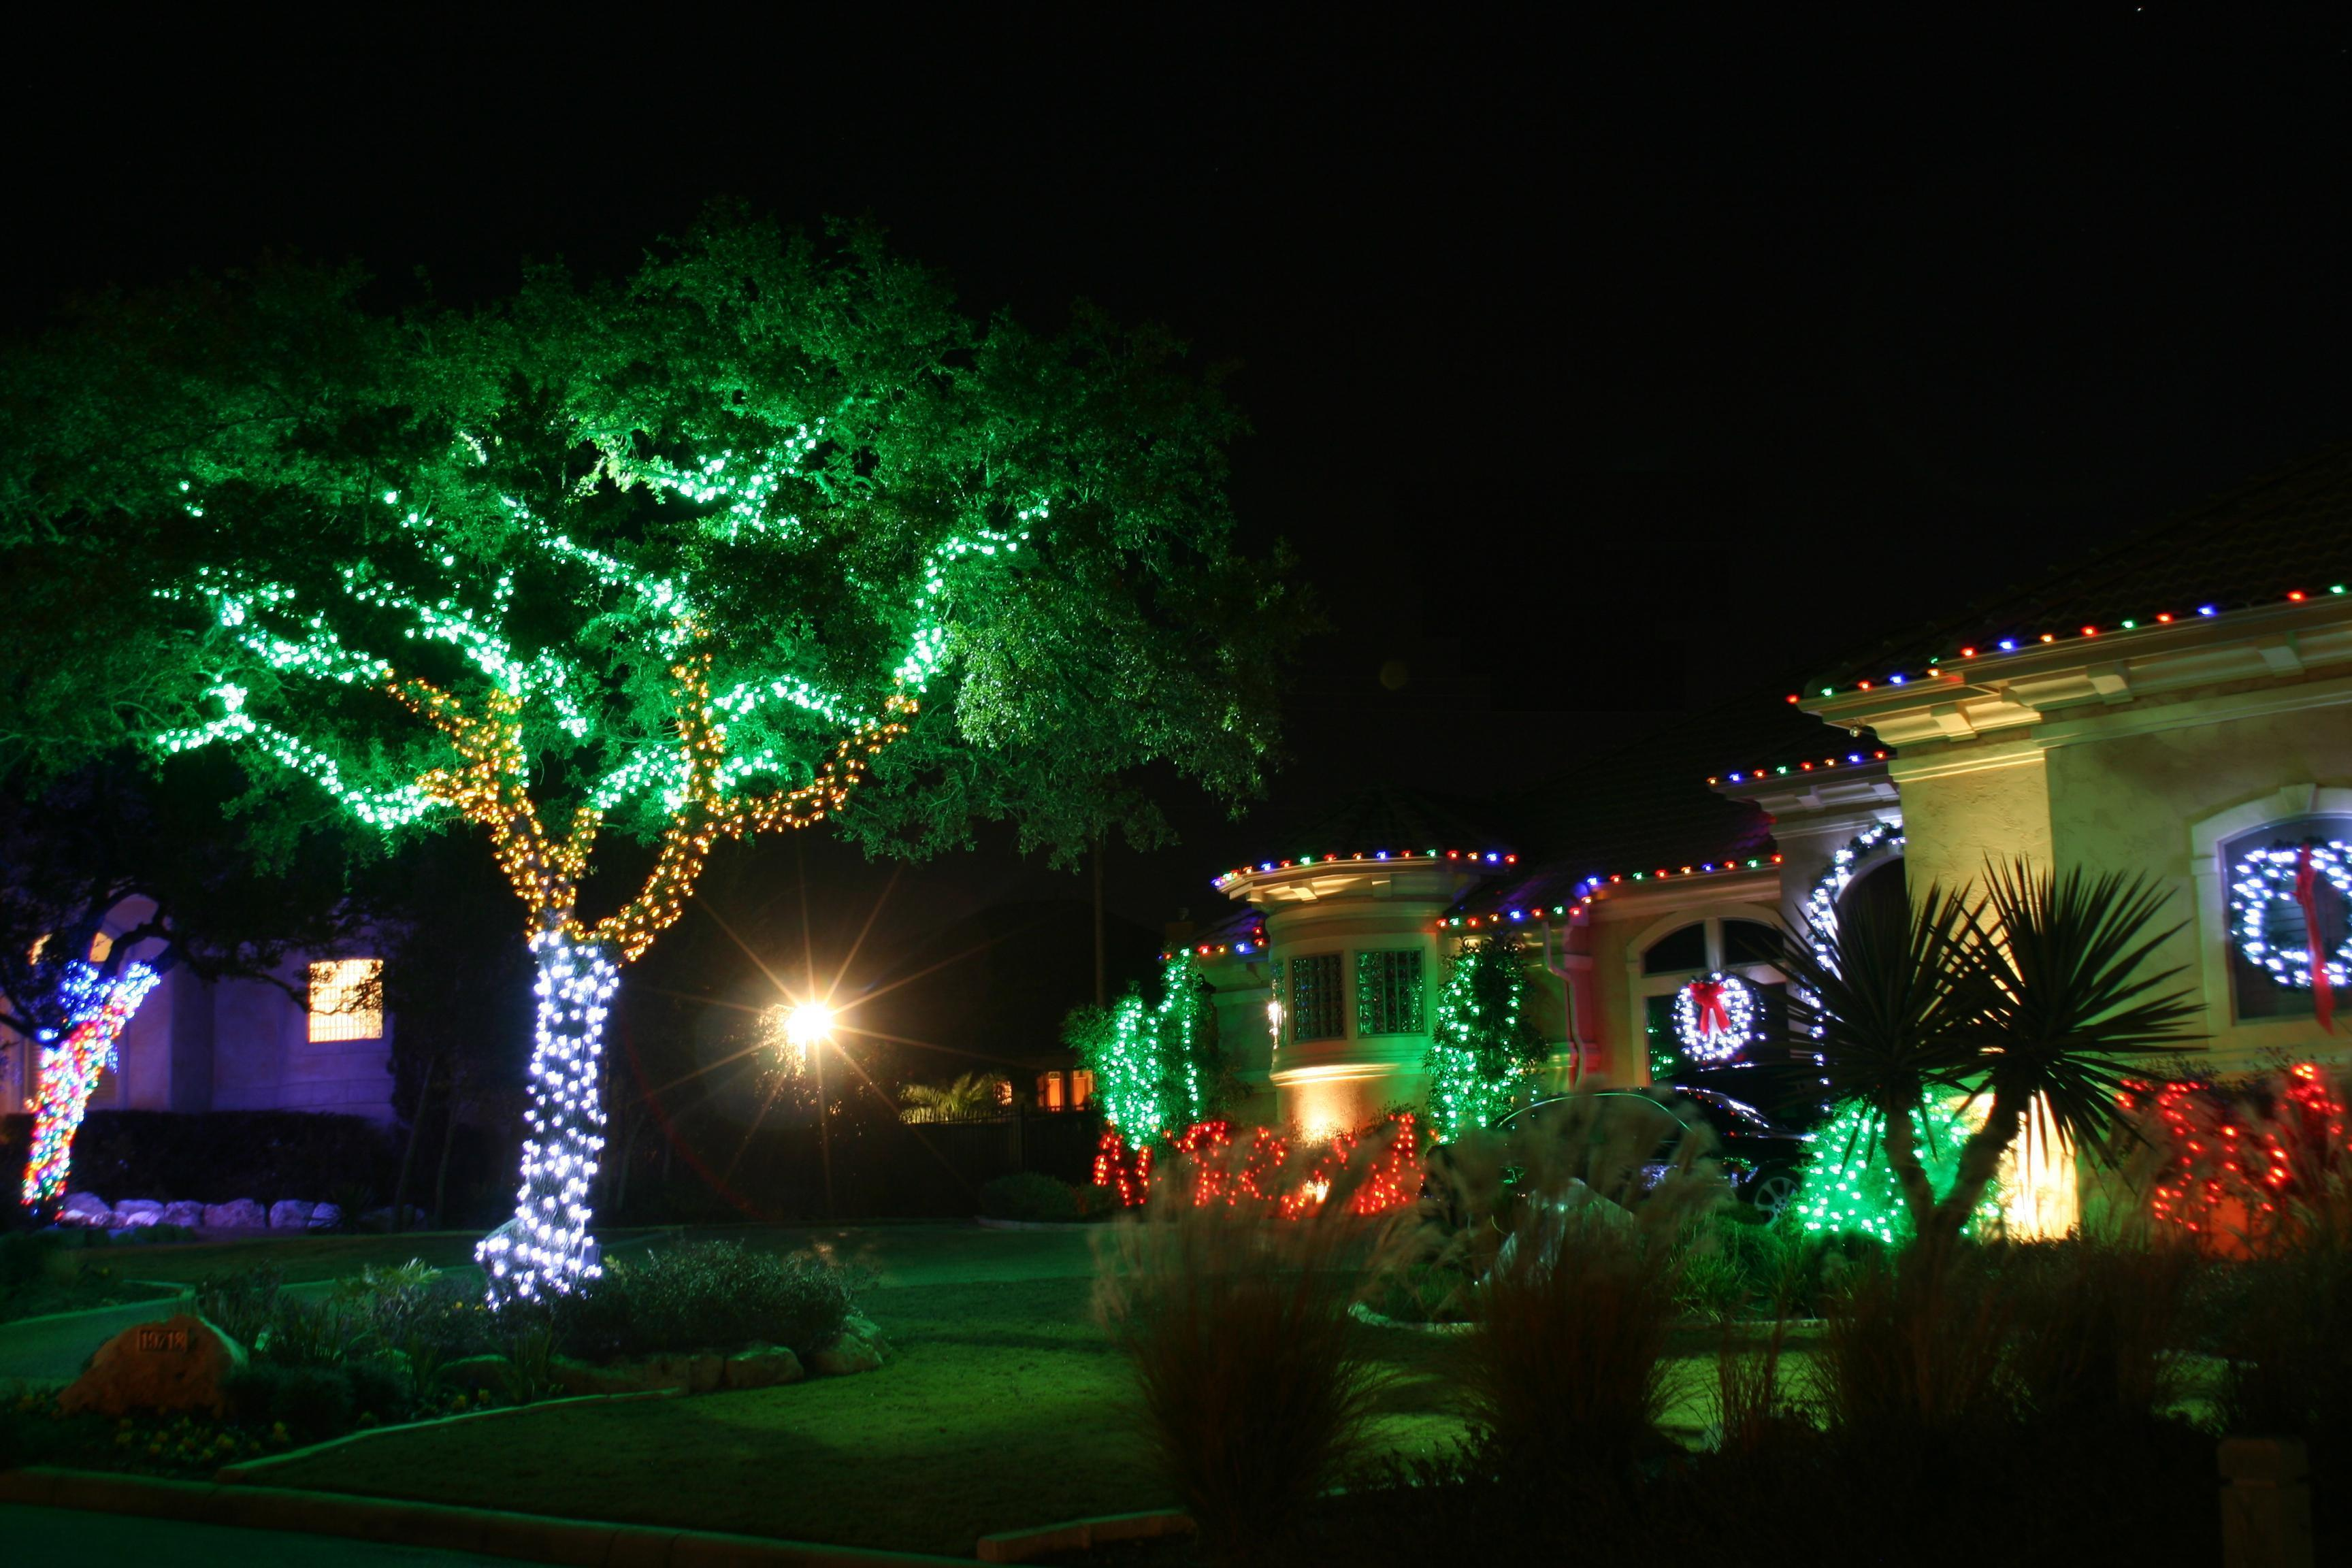 Inspiring Pictures Of Christmas Decorations Outside Christmas.